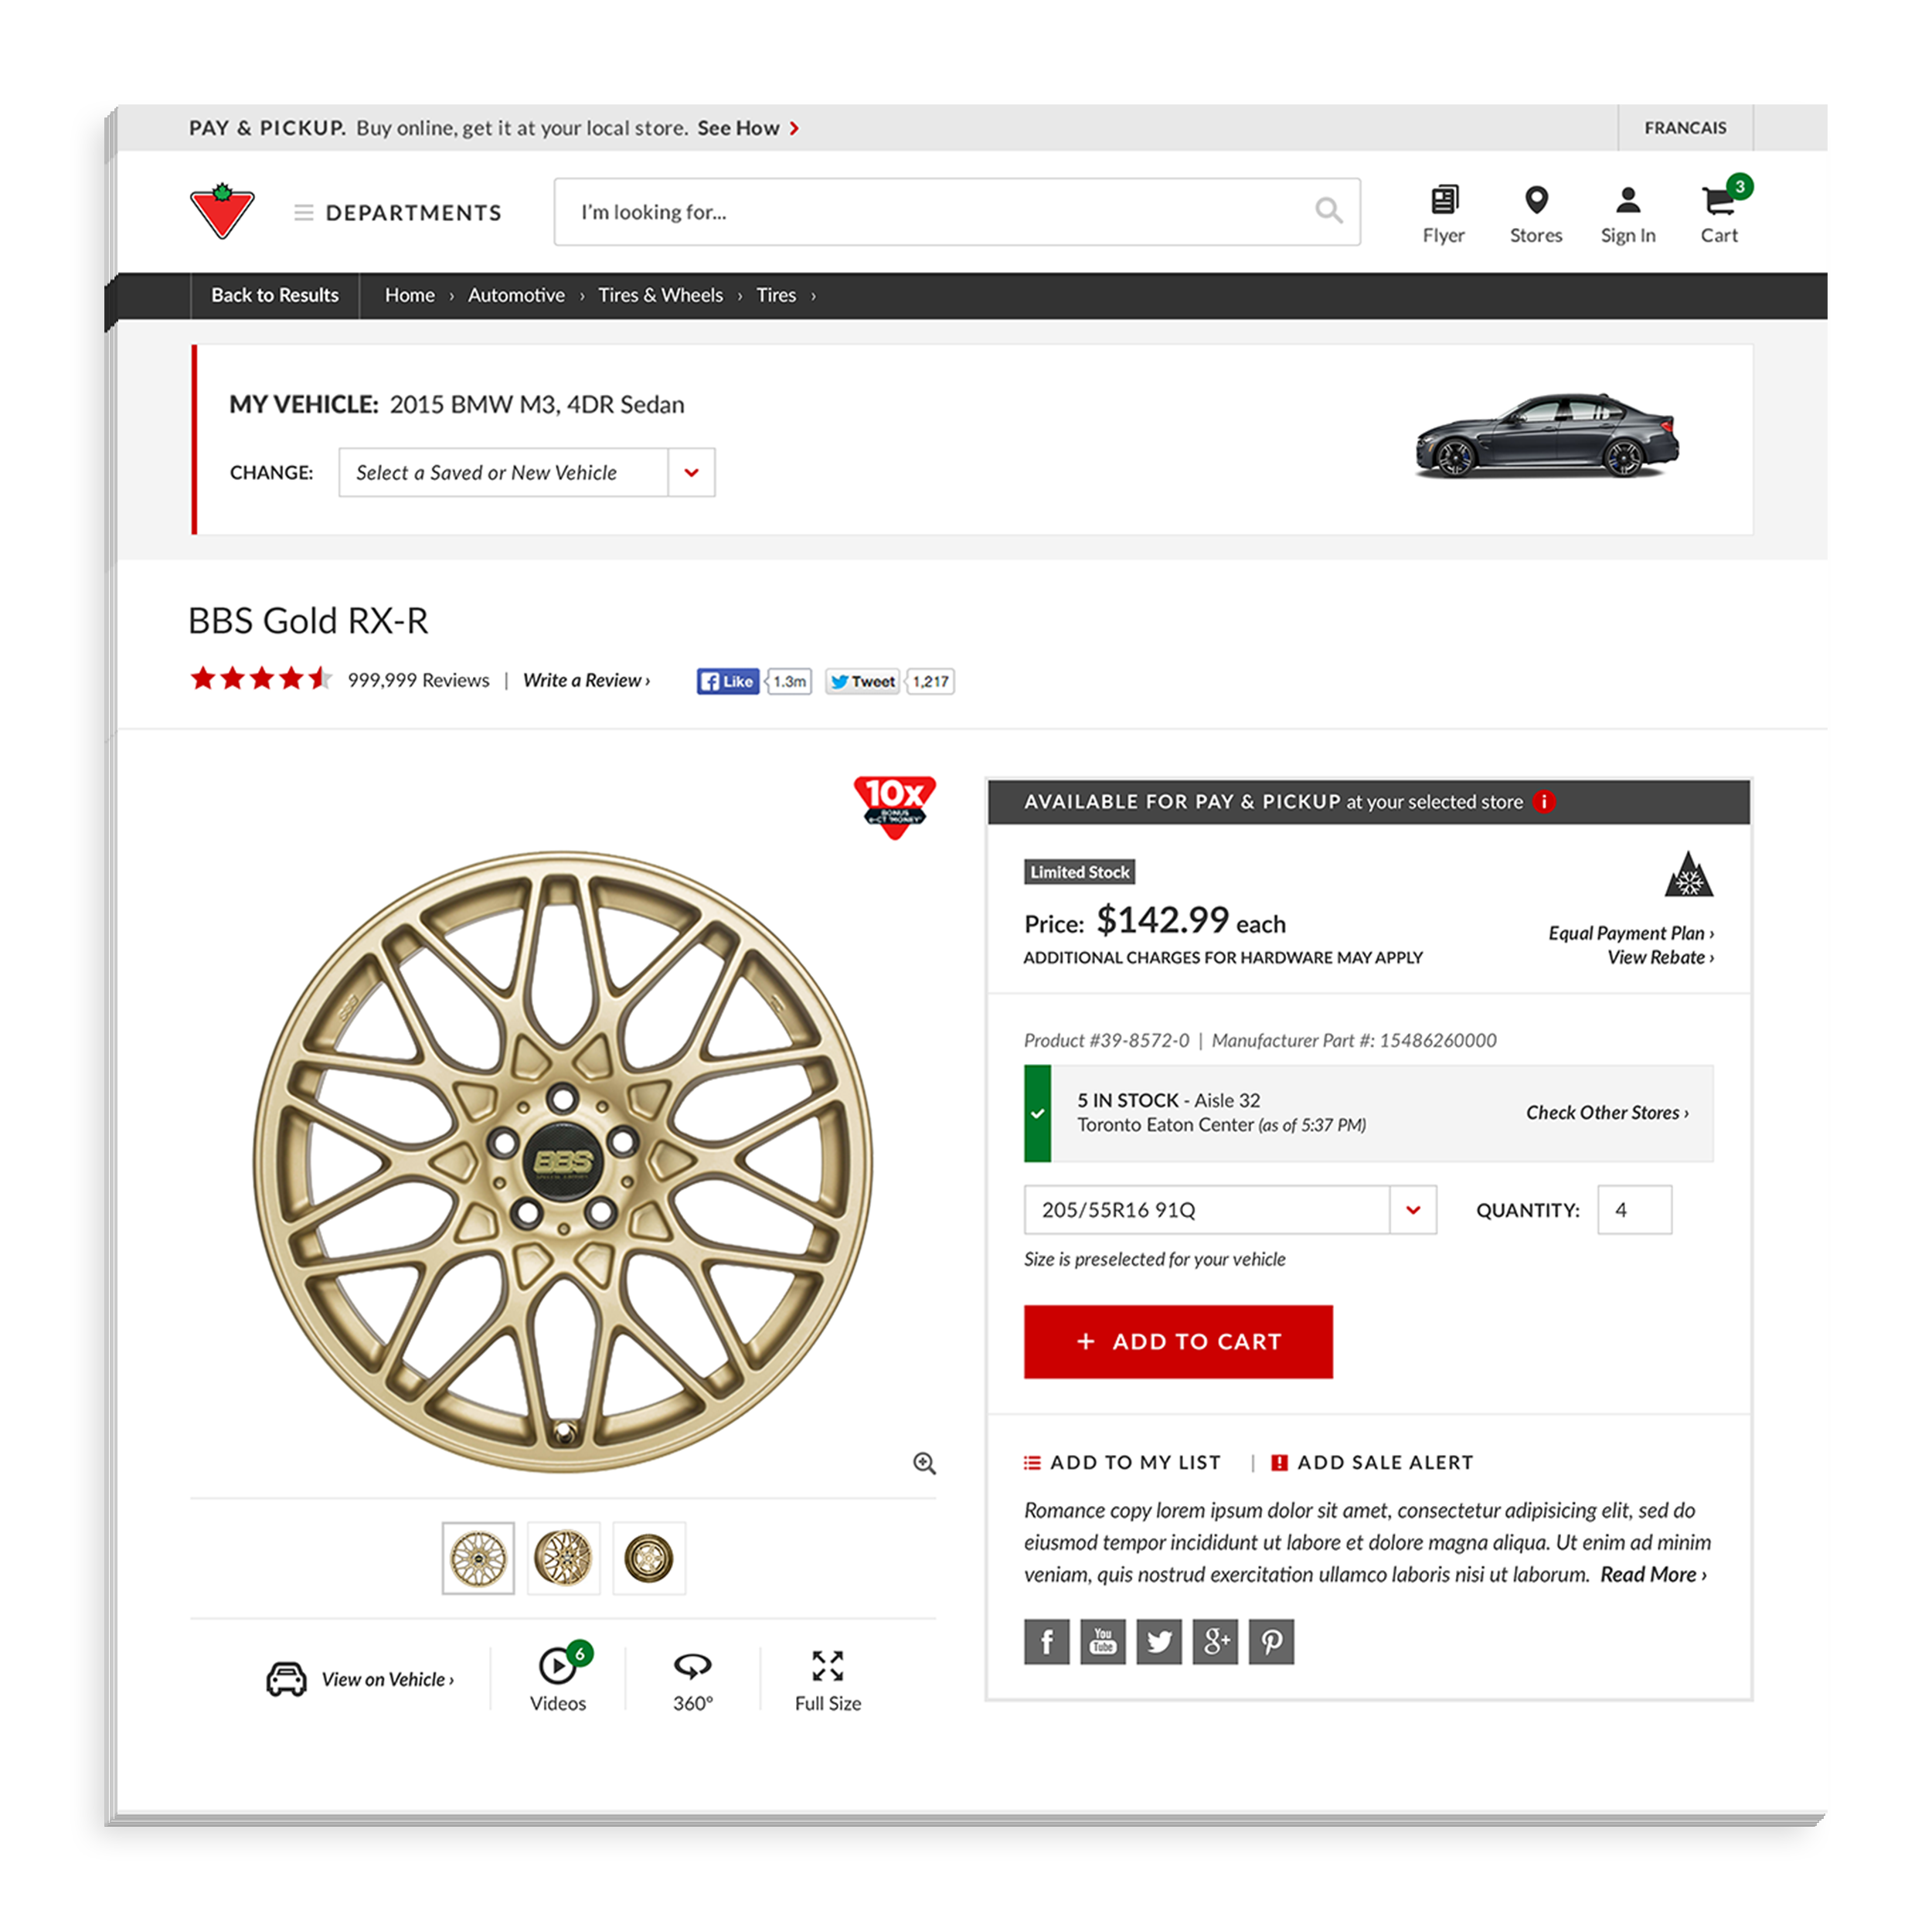 - Users can find more information (specs, photos, etc.) about a wheel or tire on the product detail page. Users can also view the product on the vehicle.